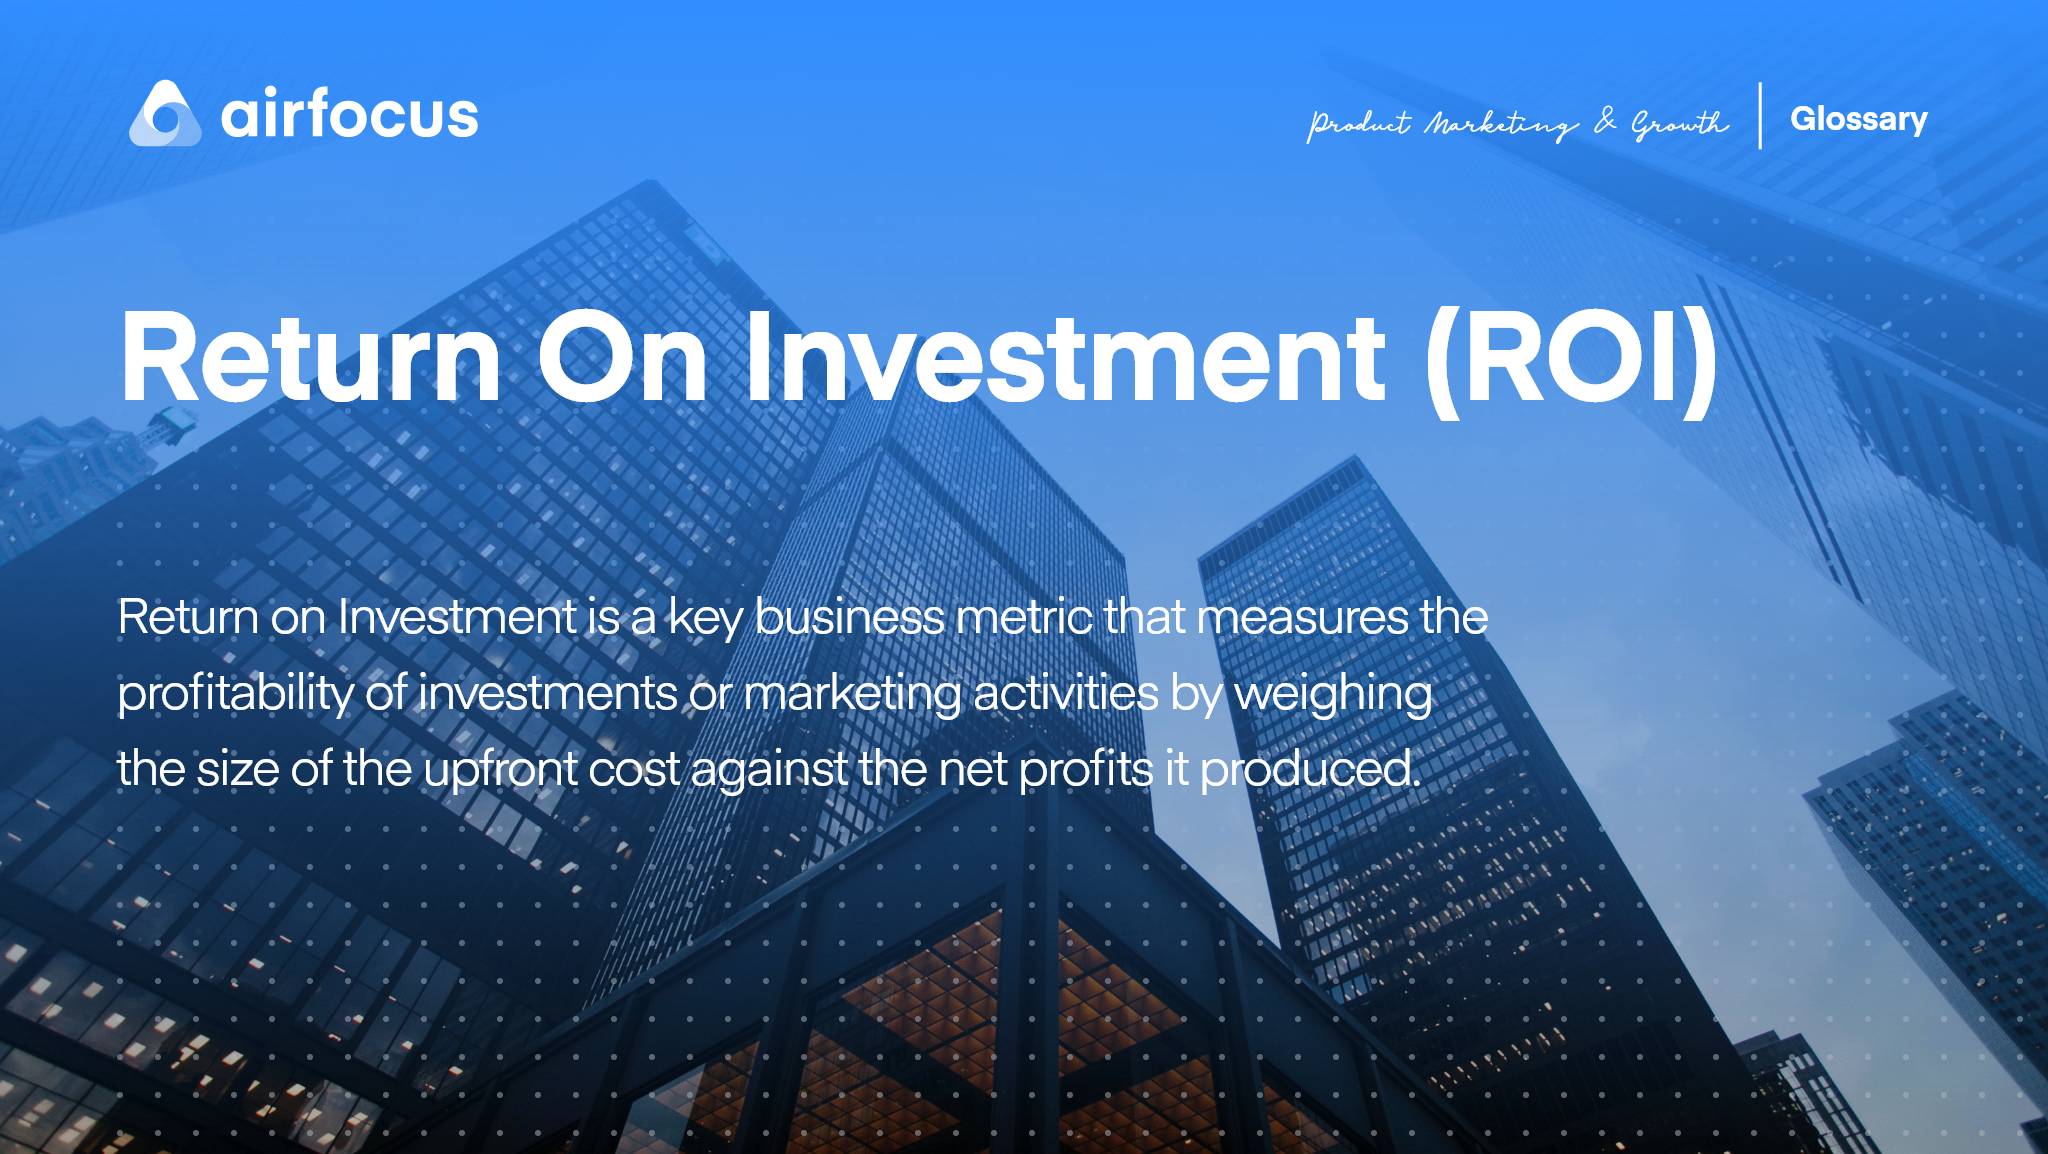 What is Return On Investment (ROI)